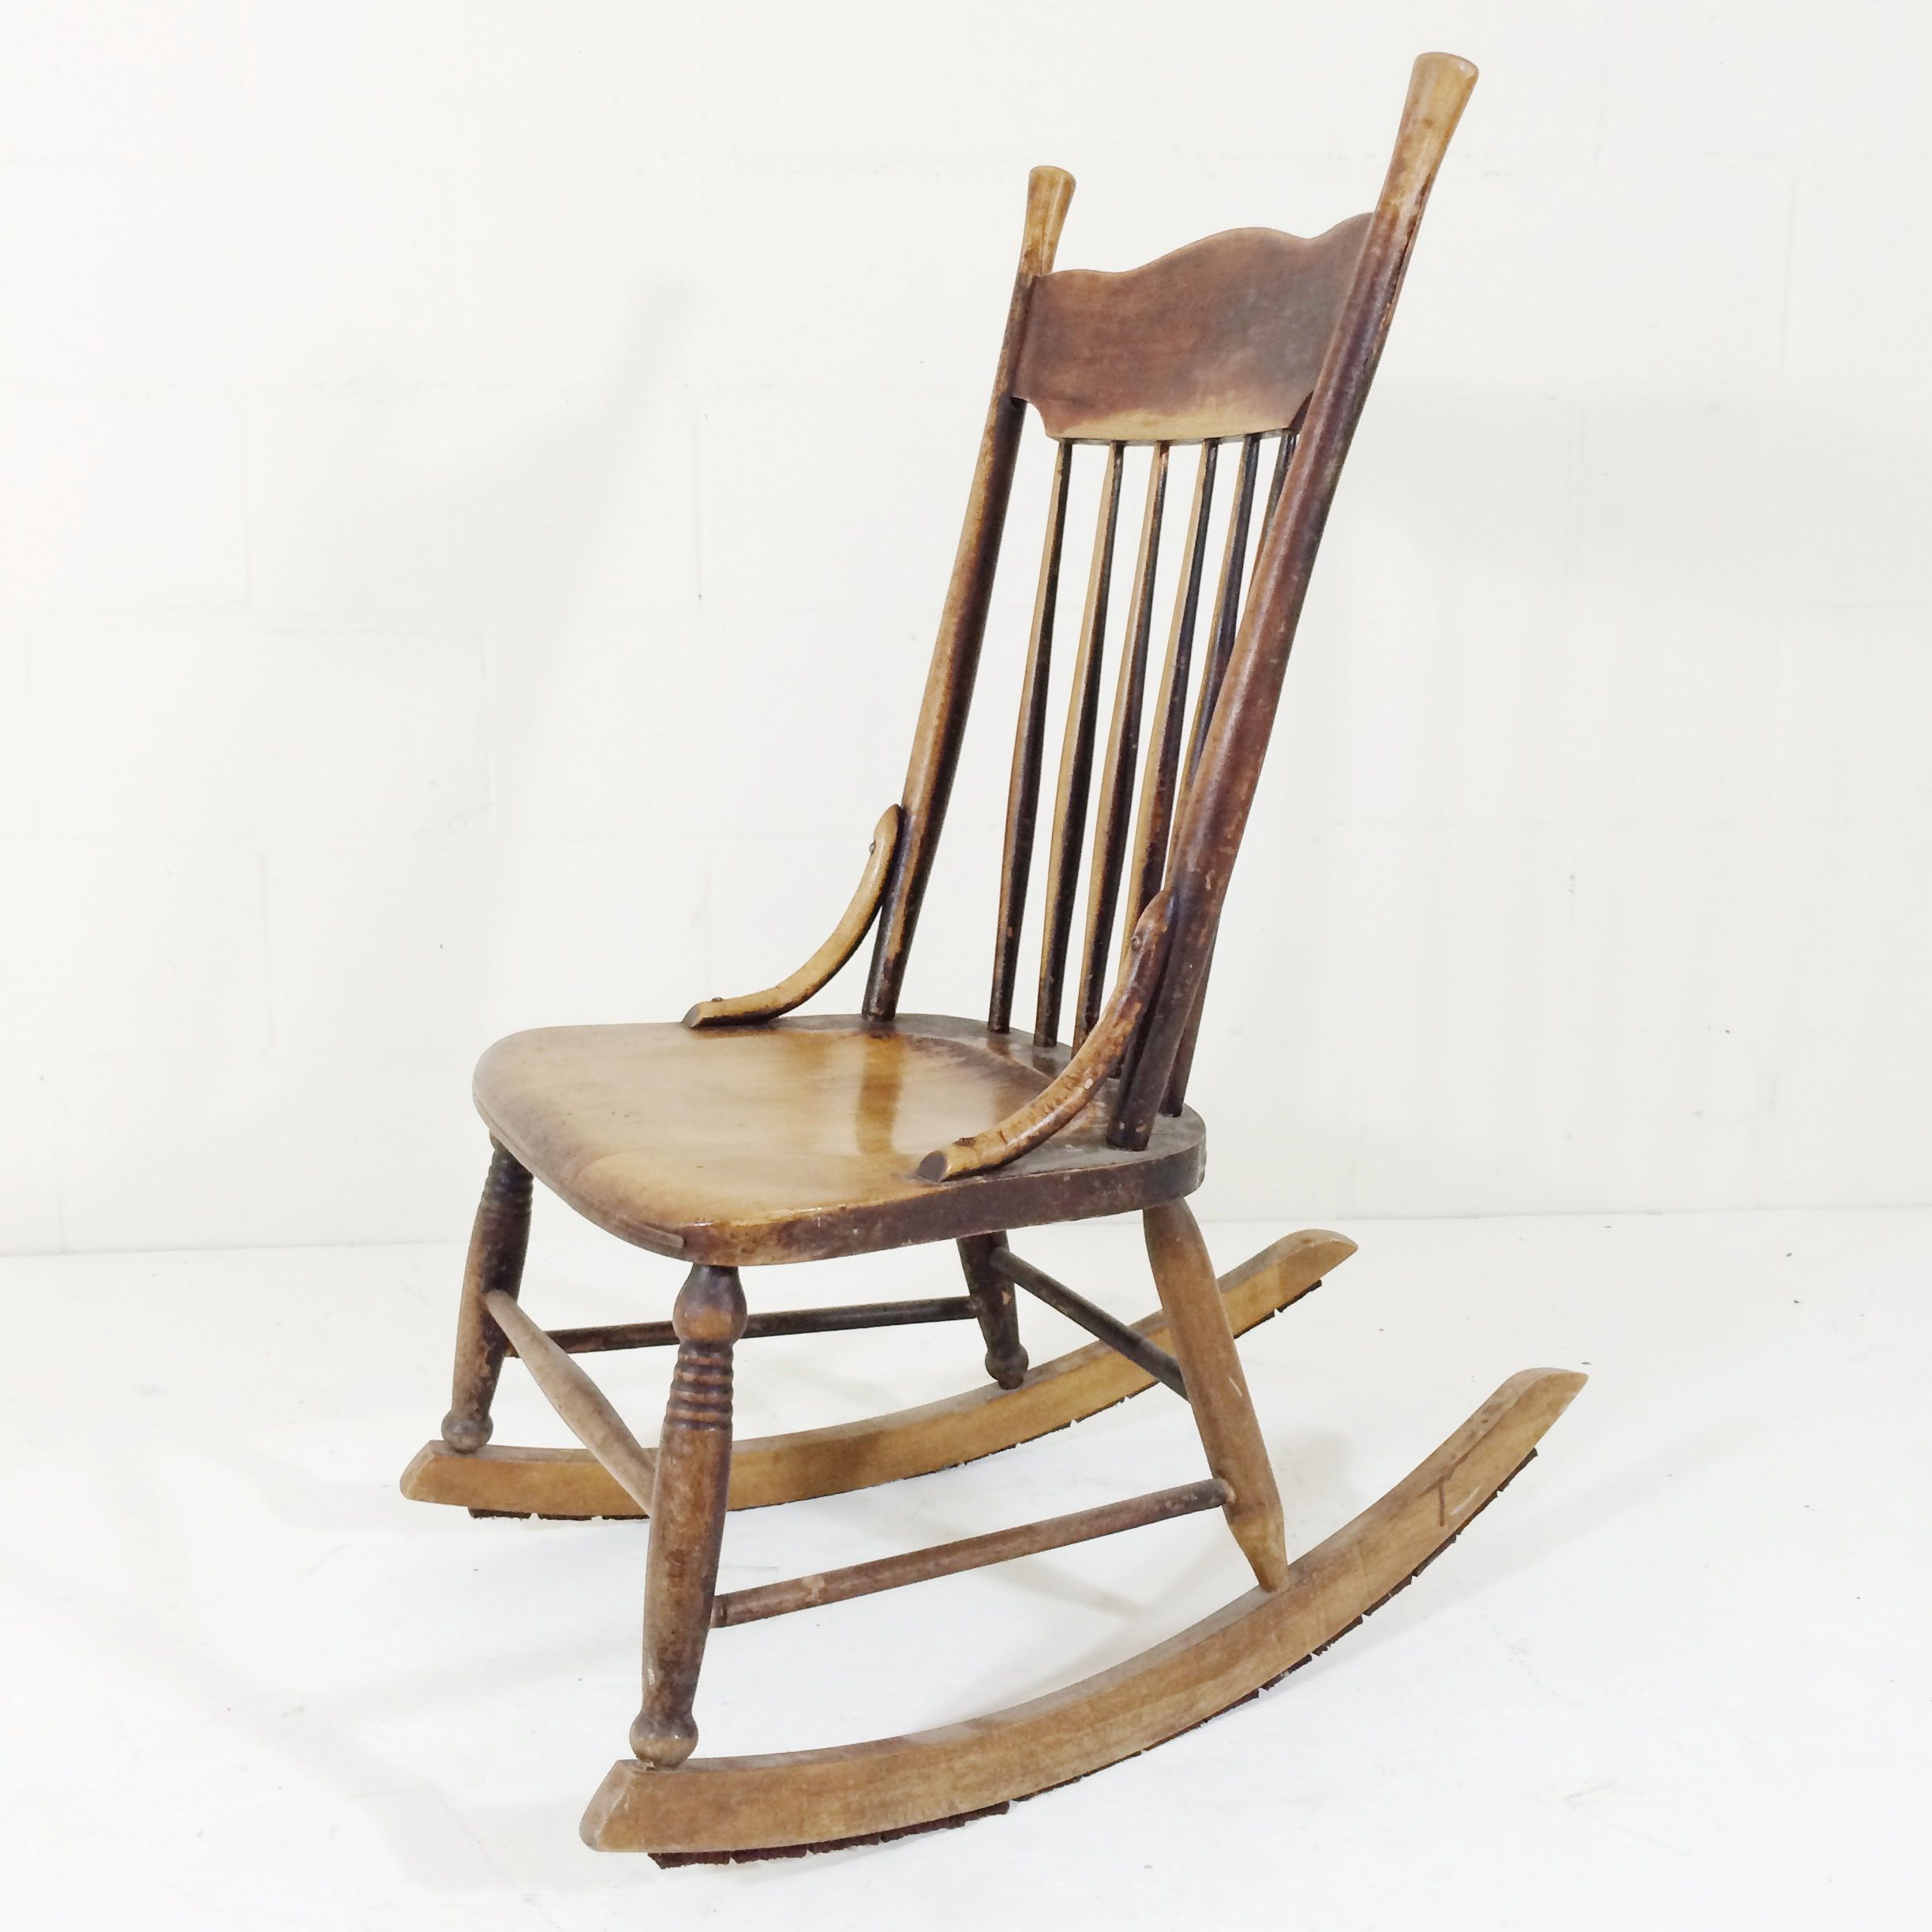 Beautifully worn antique rocking chair This style is known as a